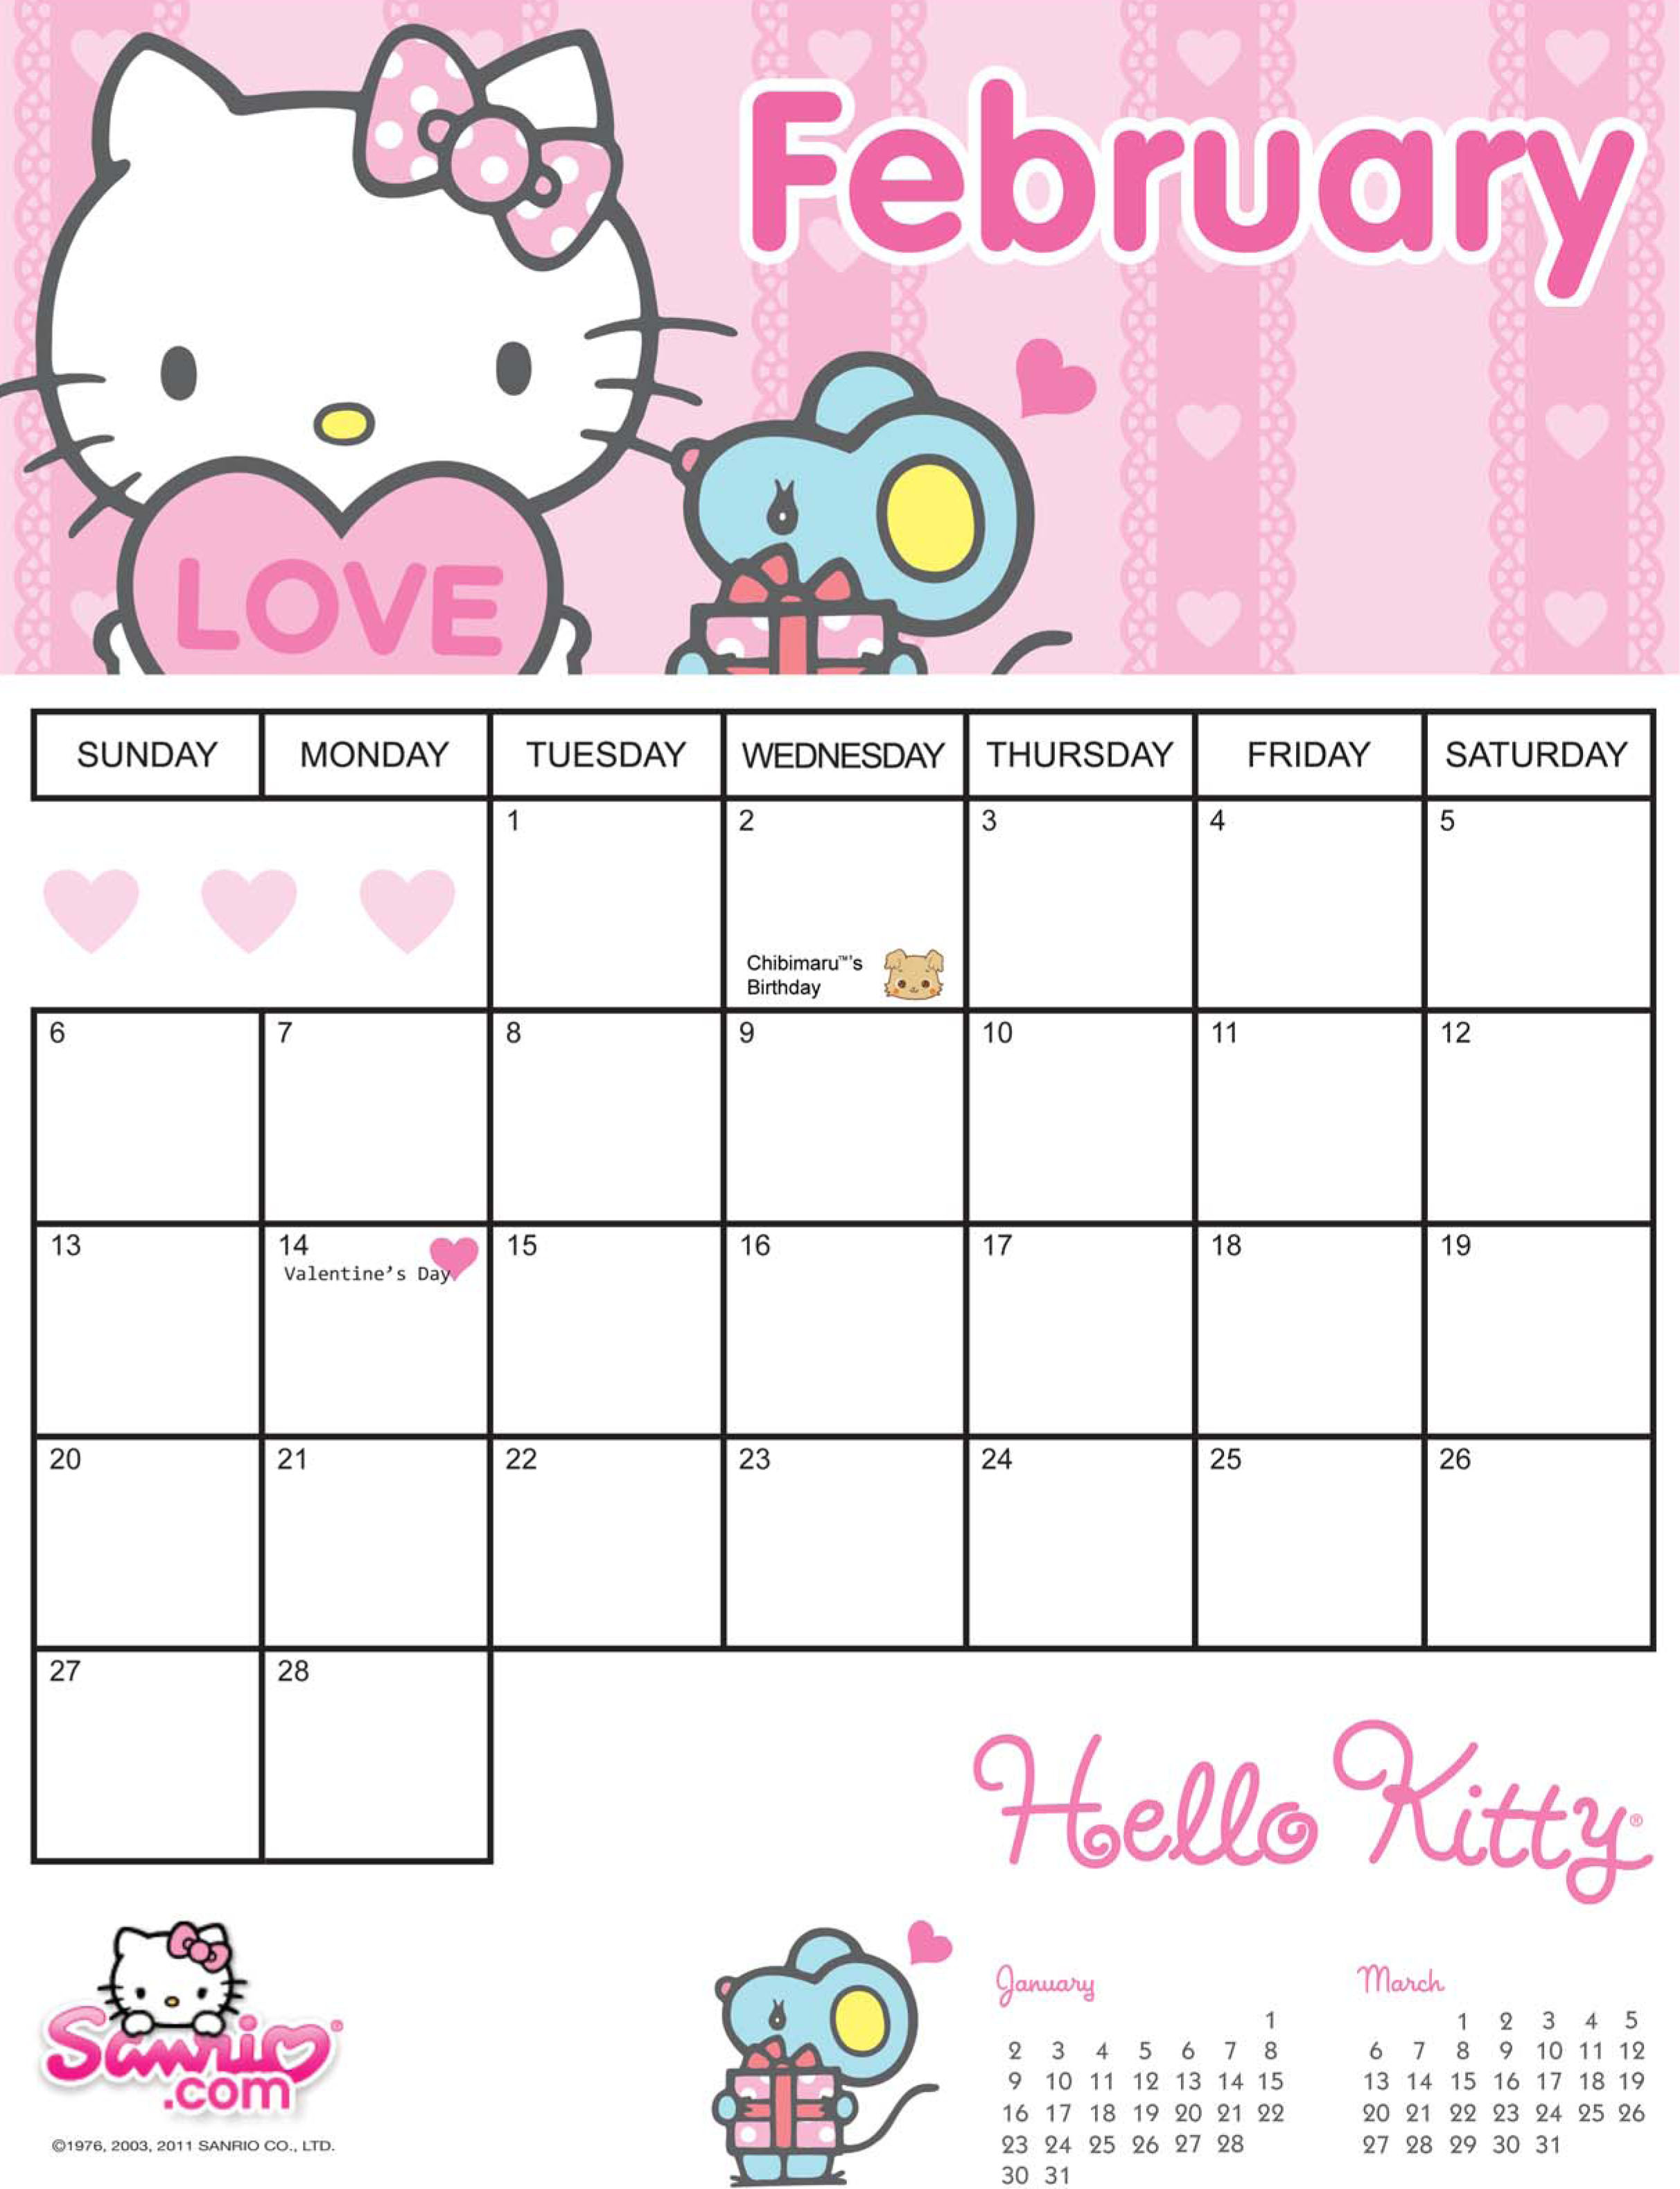 7 Images of Sanrio Printable Calendar Blank